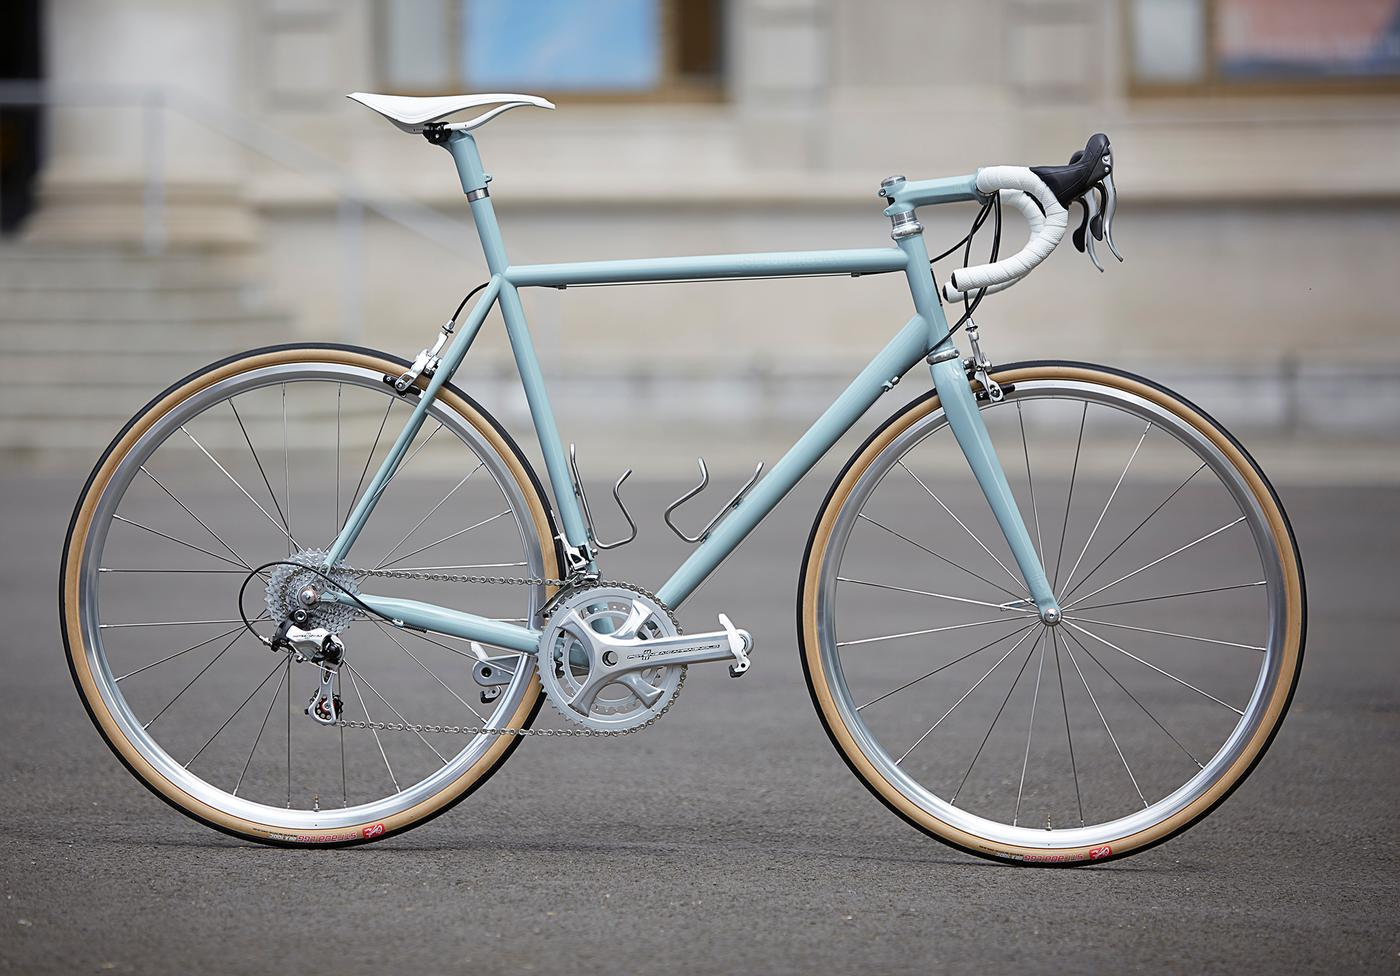 A Classic Speedvagen with Silver Components